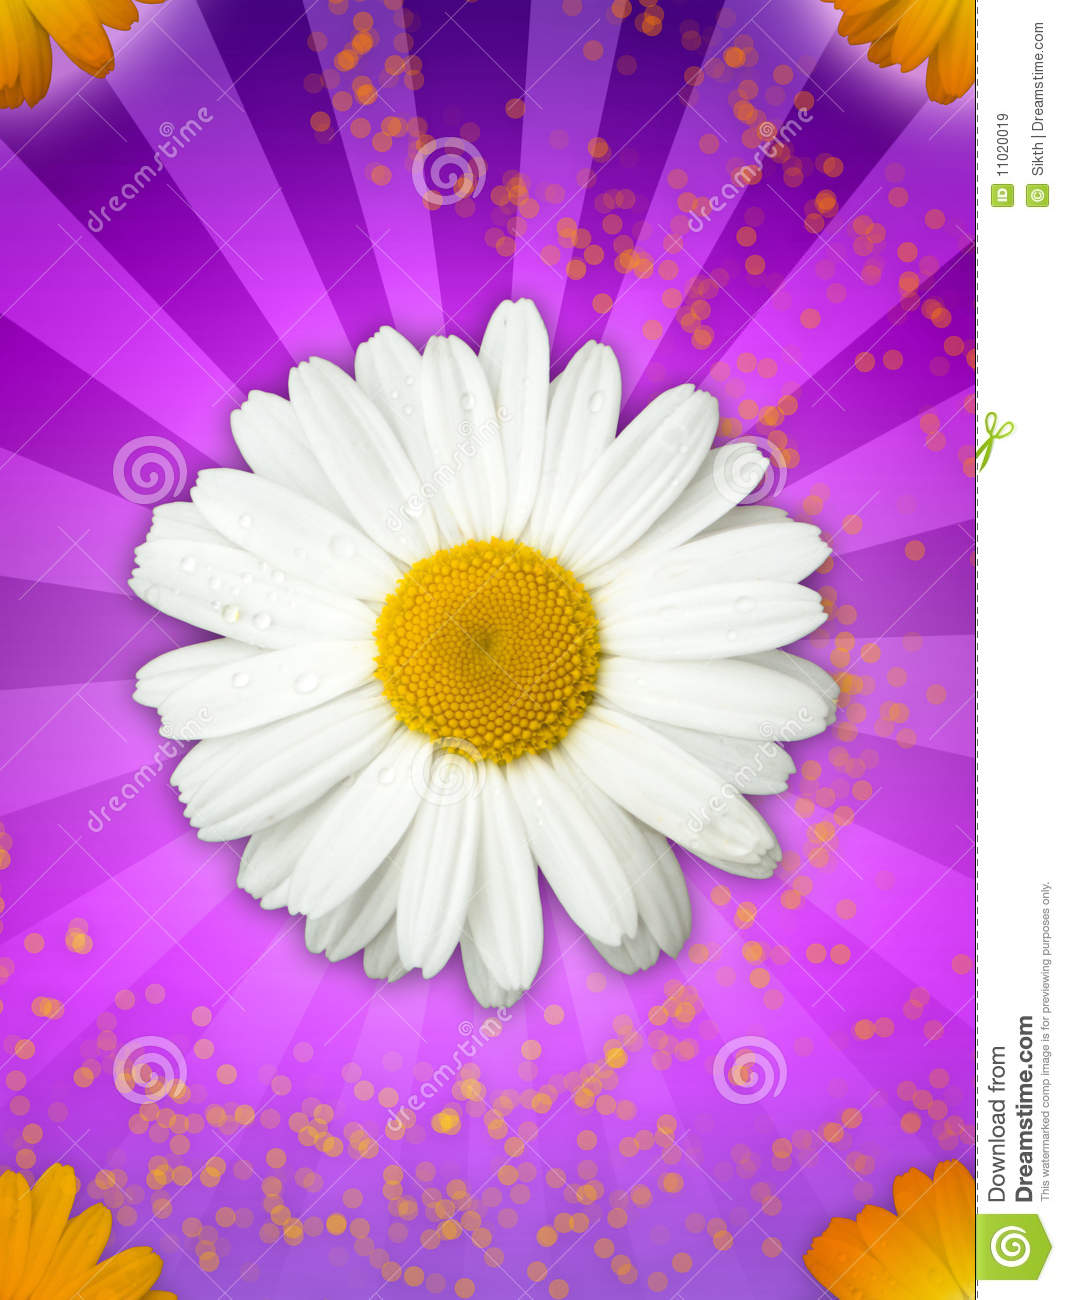 Daisy Flower on Magical Purple Background